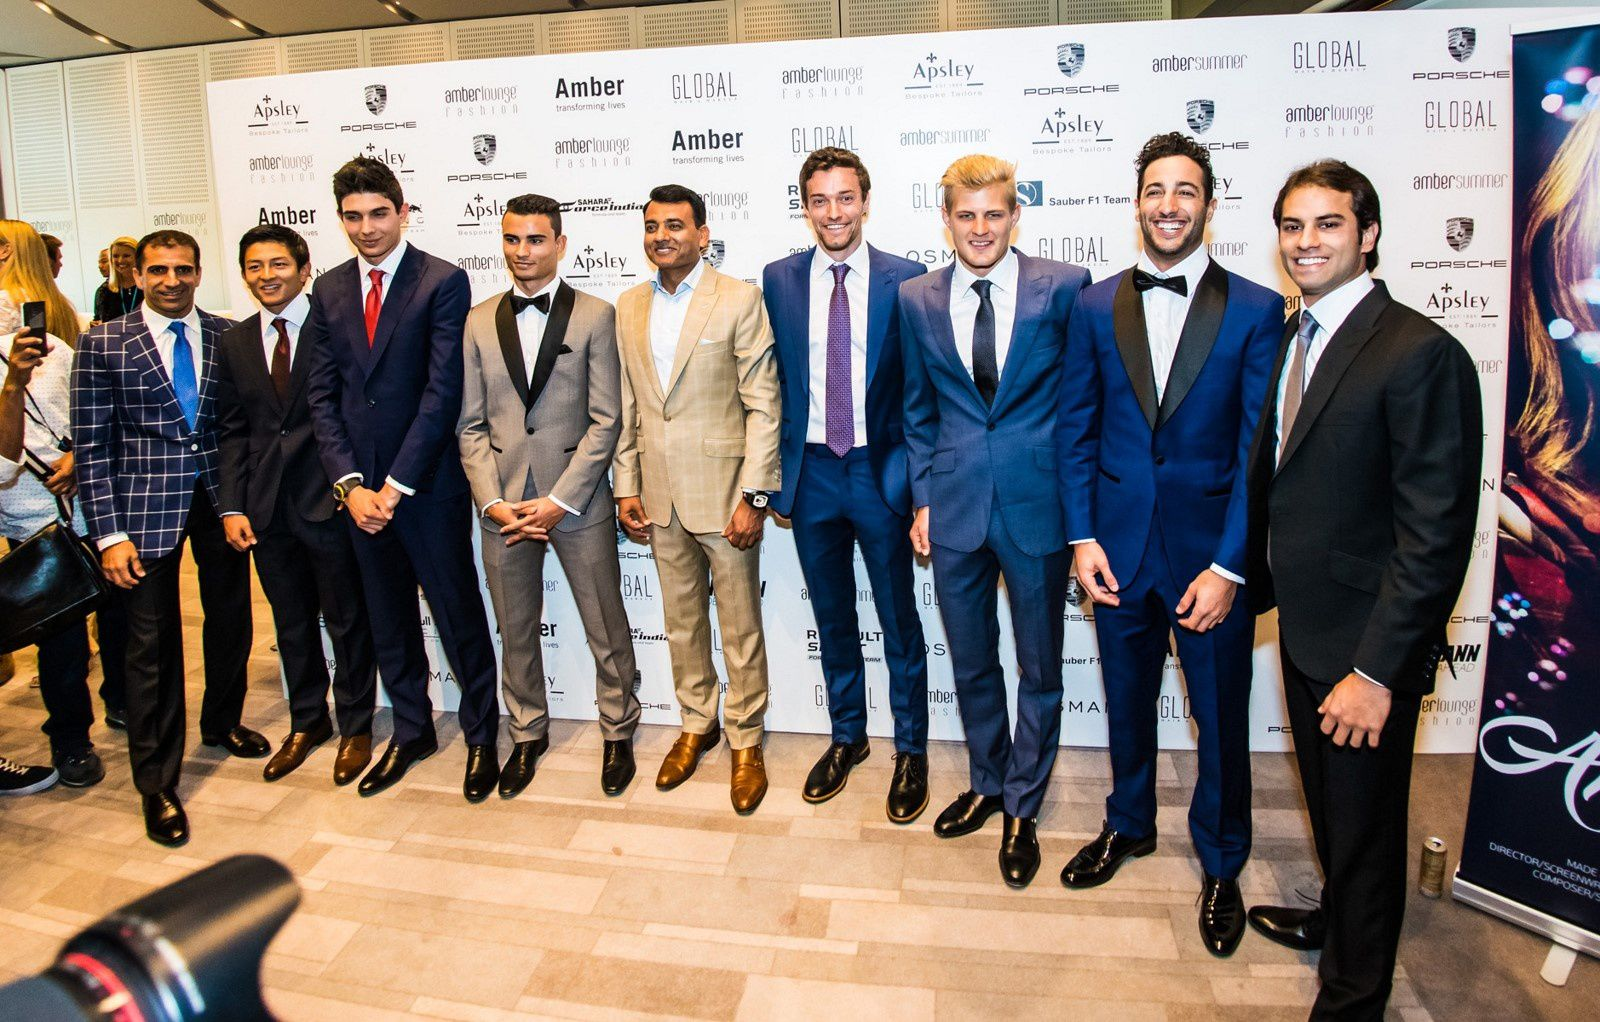 AMBER LOUNGE MONACO 2016 HOSTS STAR-STUDDED FASHION AFTER-PARTY TO CELEBRATE ITS 10TH FASHION ANNIVERSARY IN BENEFIT OF THE AMBER FOUNDATION